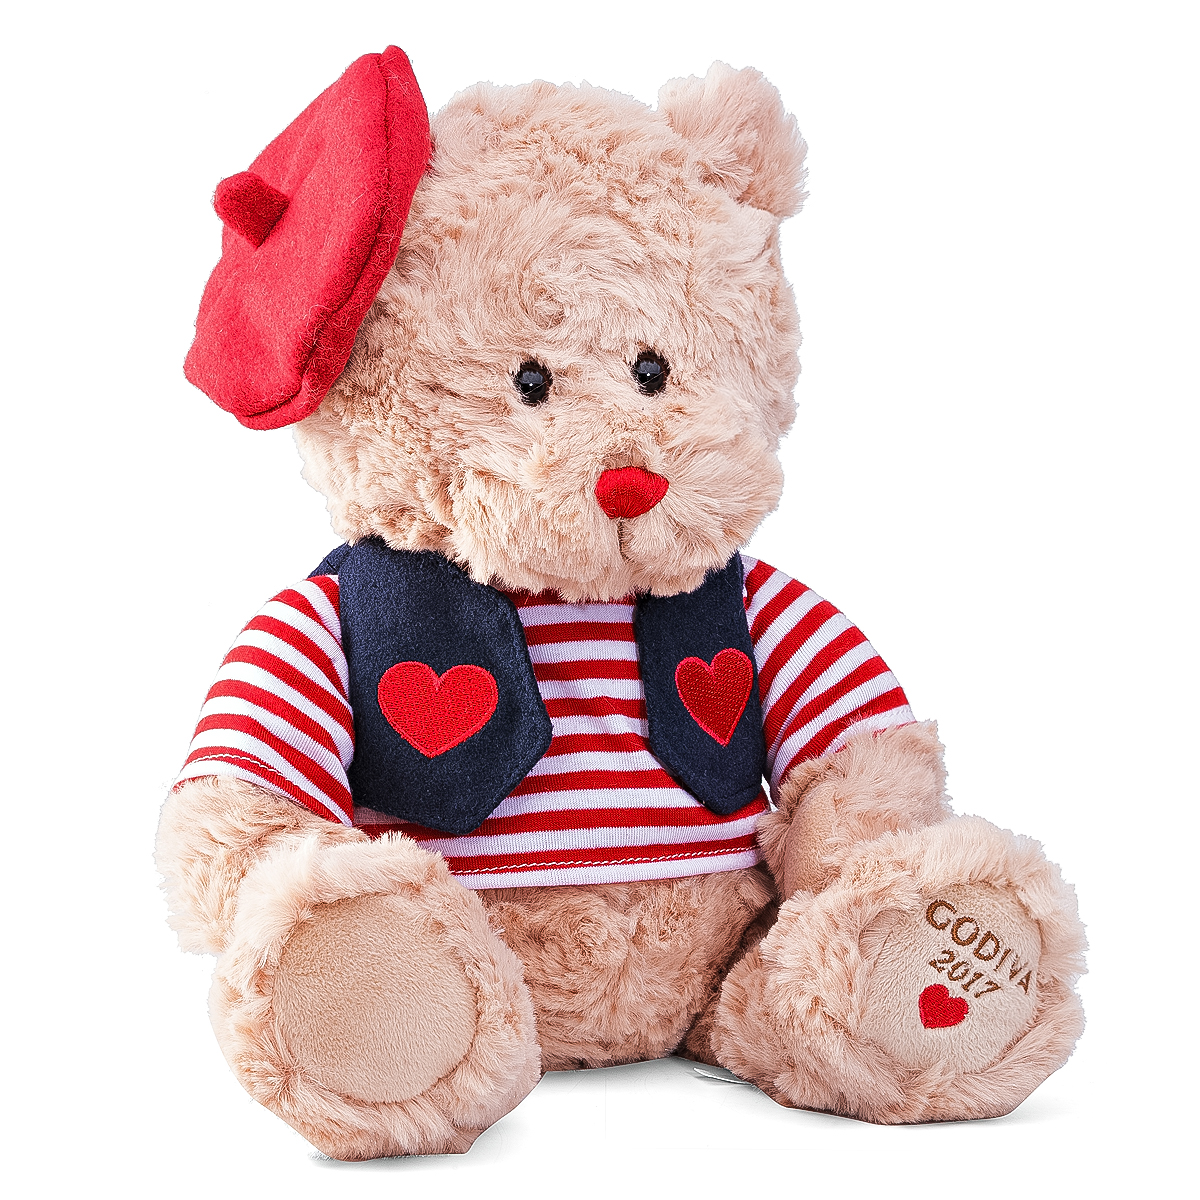 Roses Valentine S Day With Stuff Toys : Godiva valentine plush bear chocolates delivery in